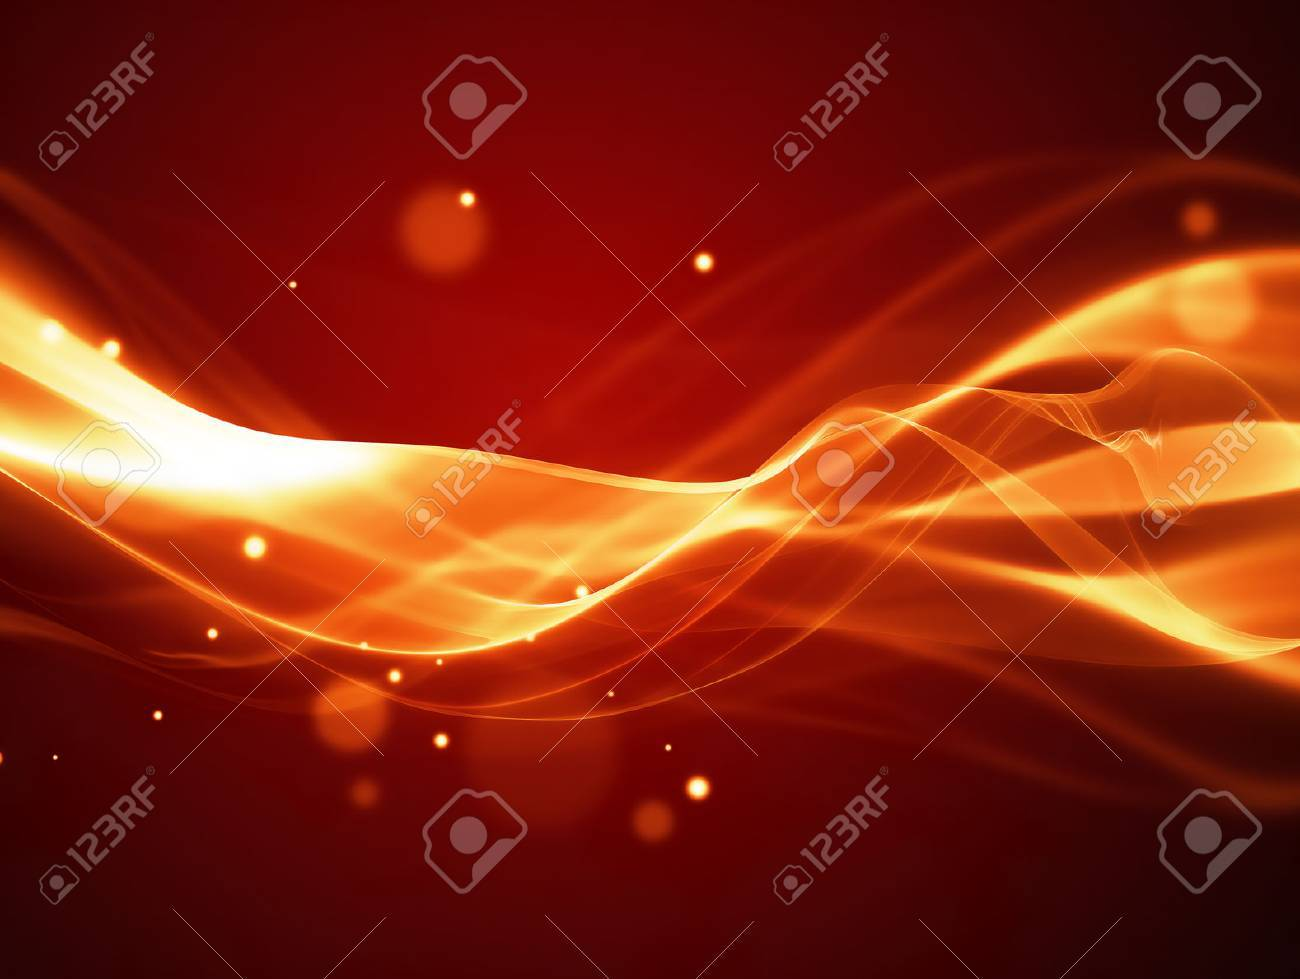 abstract fire background with smooth soft lines - 48541438